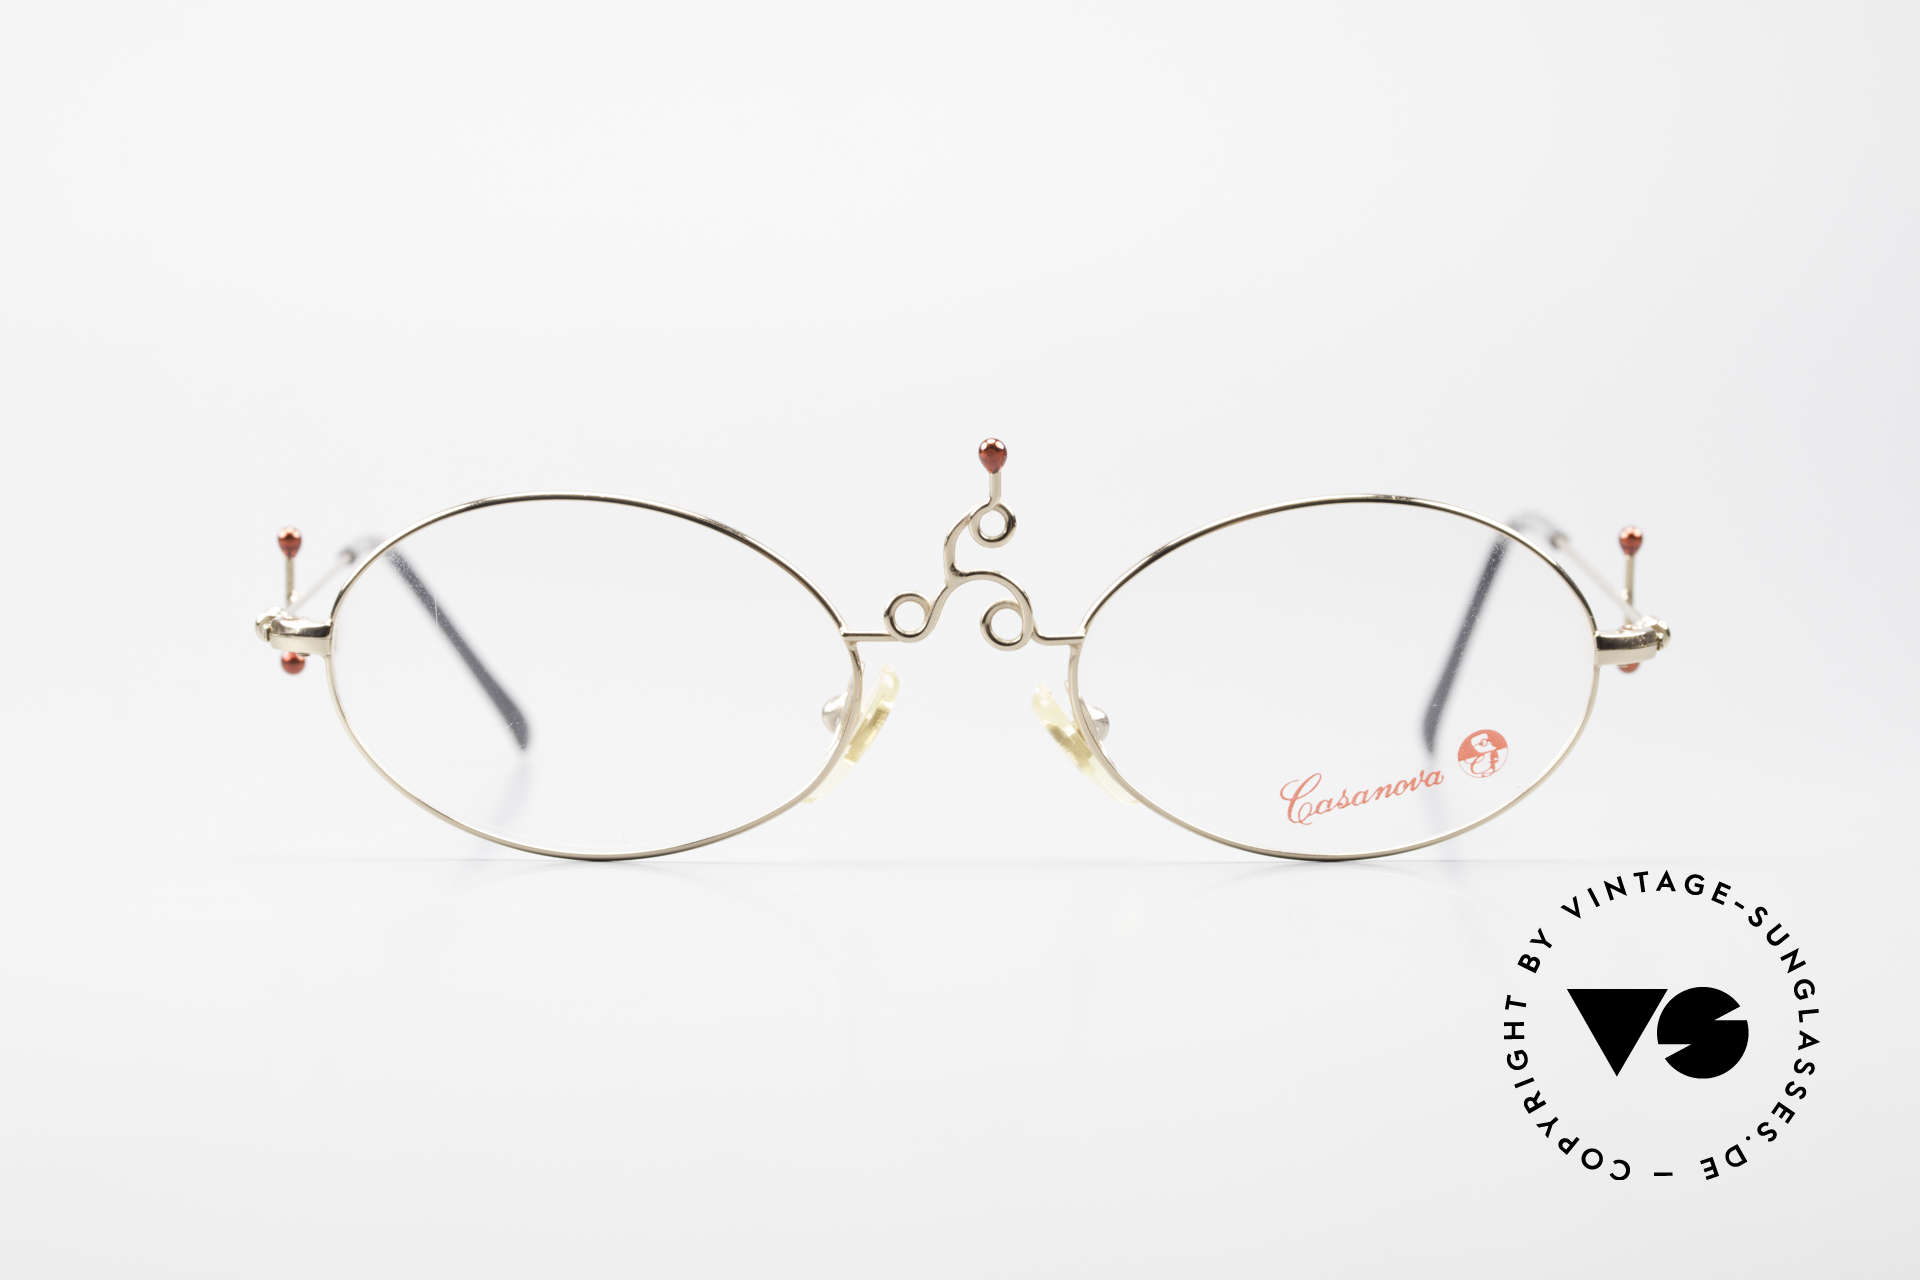 Casanova Arché 1 Art Glasses 80's Gold Plated, distinctive Venetian design in style of the 18th century, Made for Women